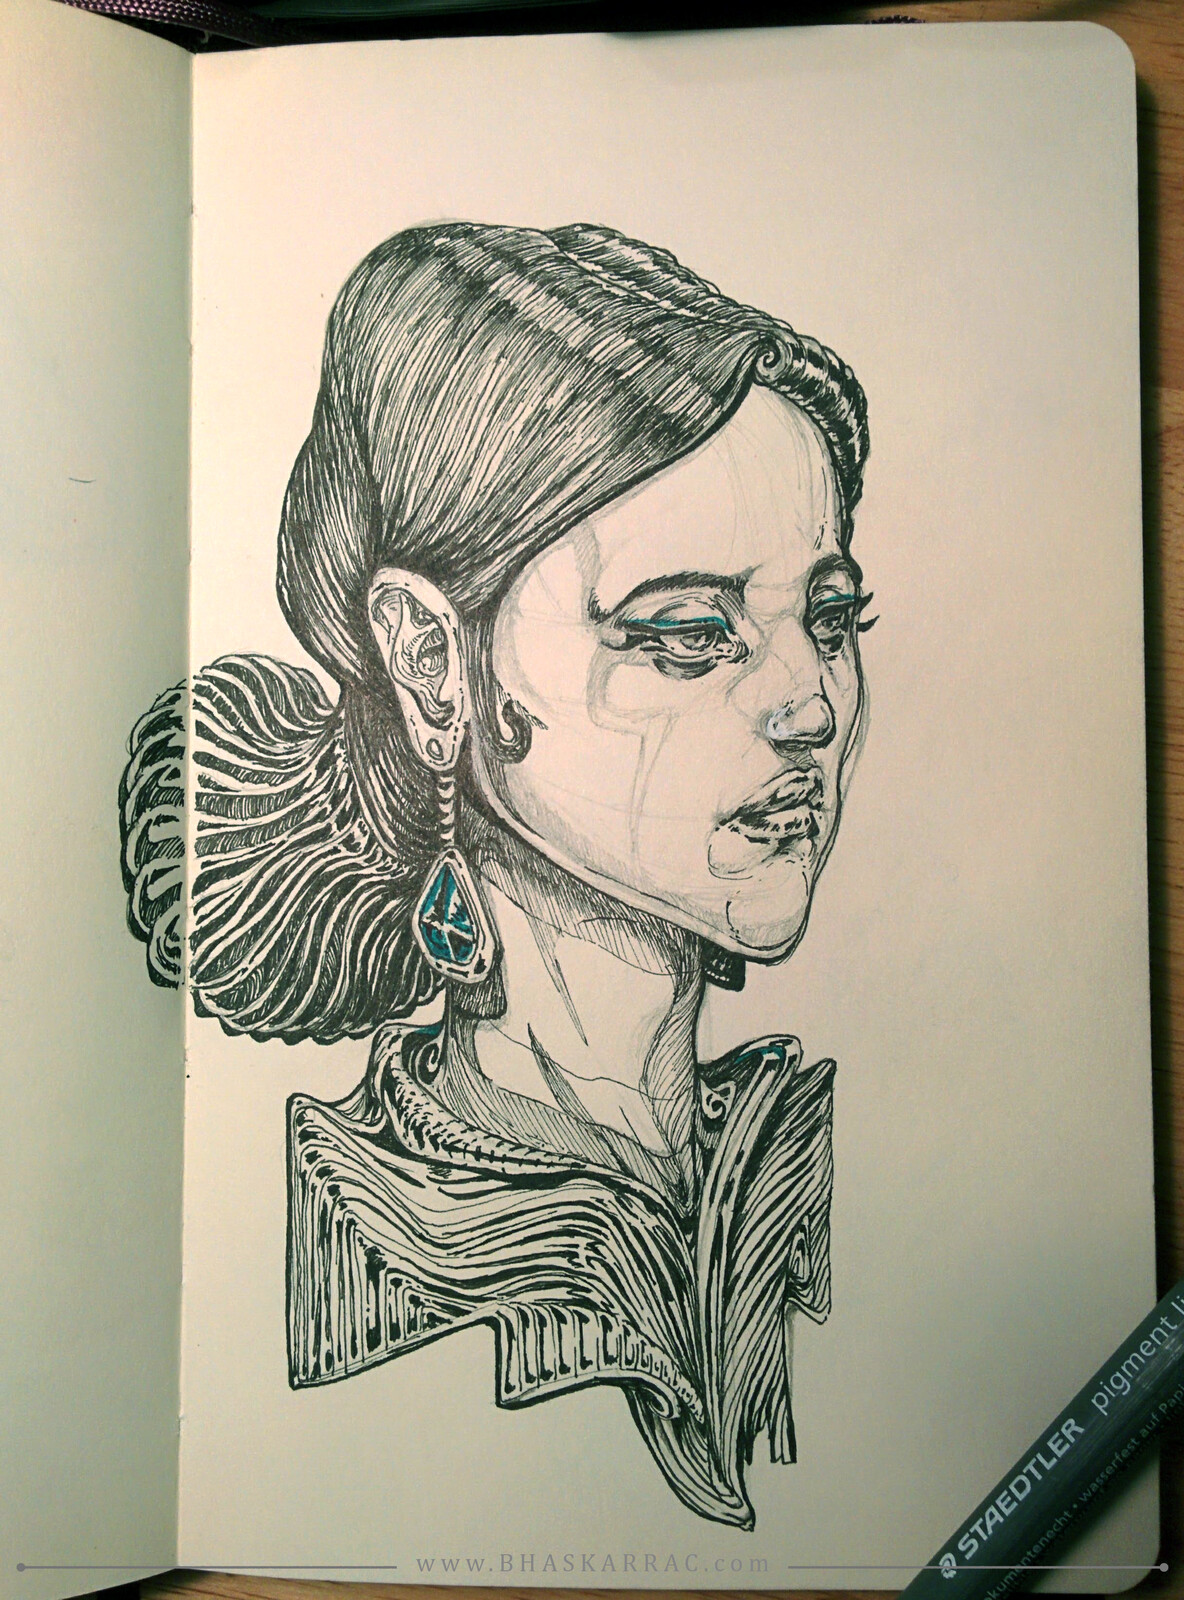 Filling up my Moleskine - more sketches